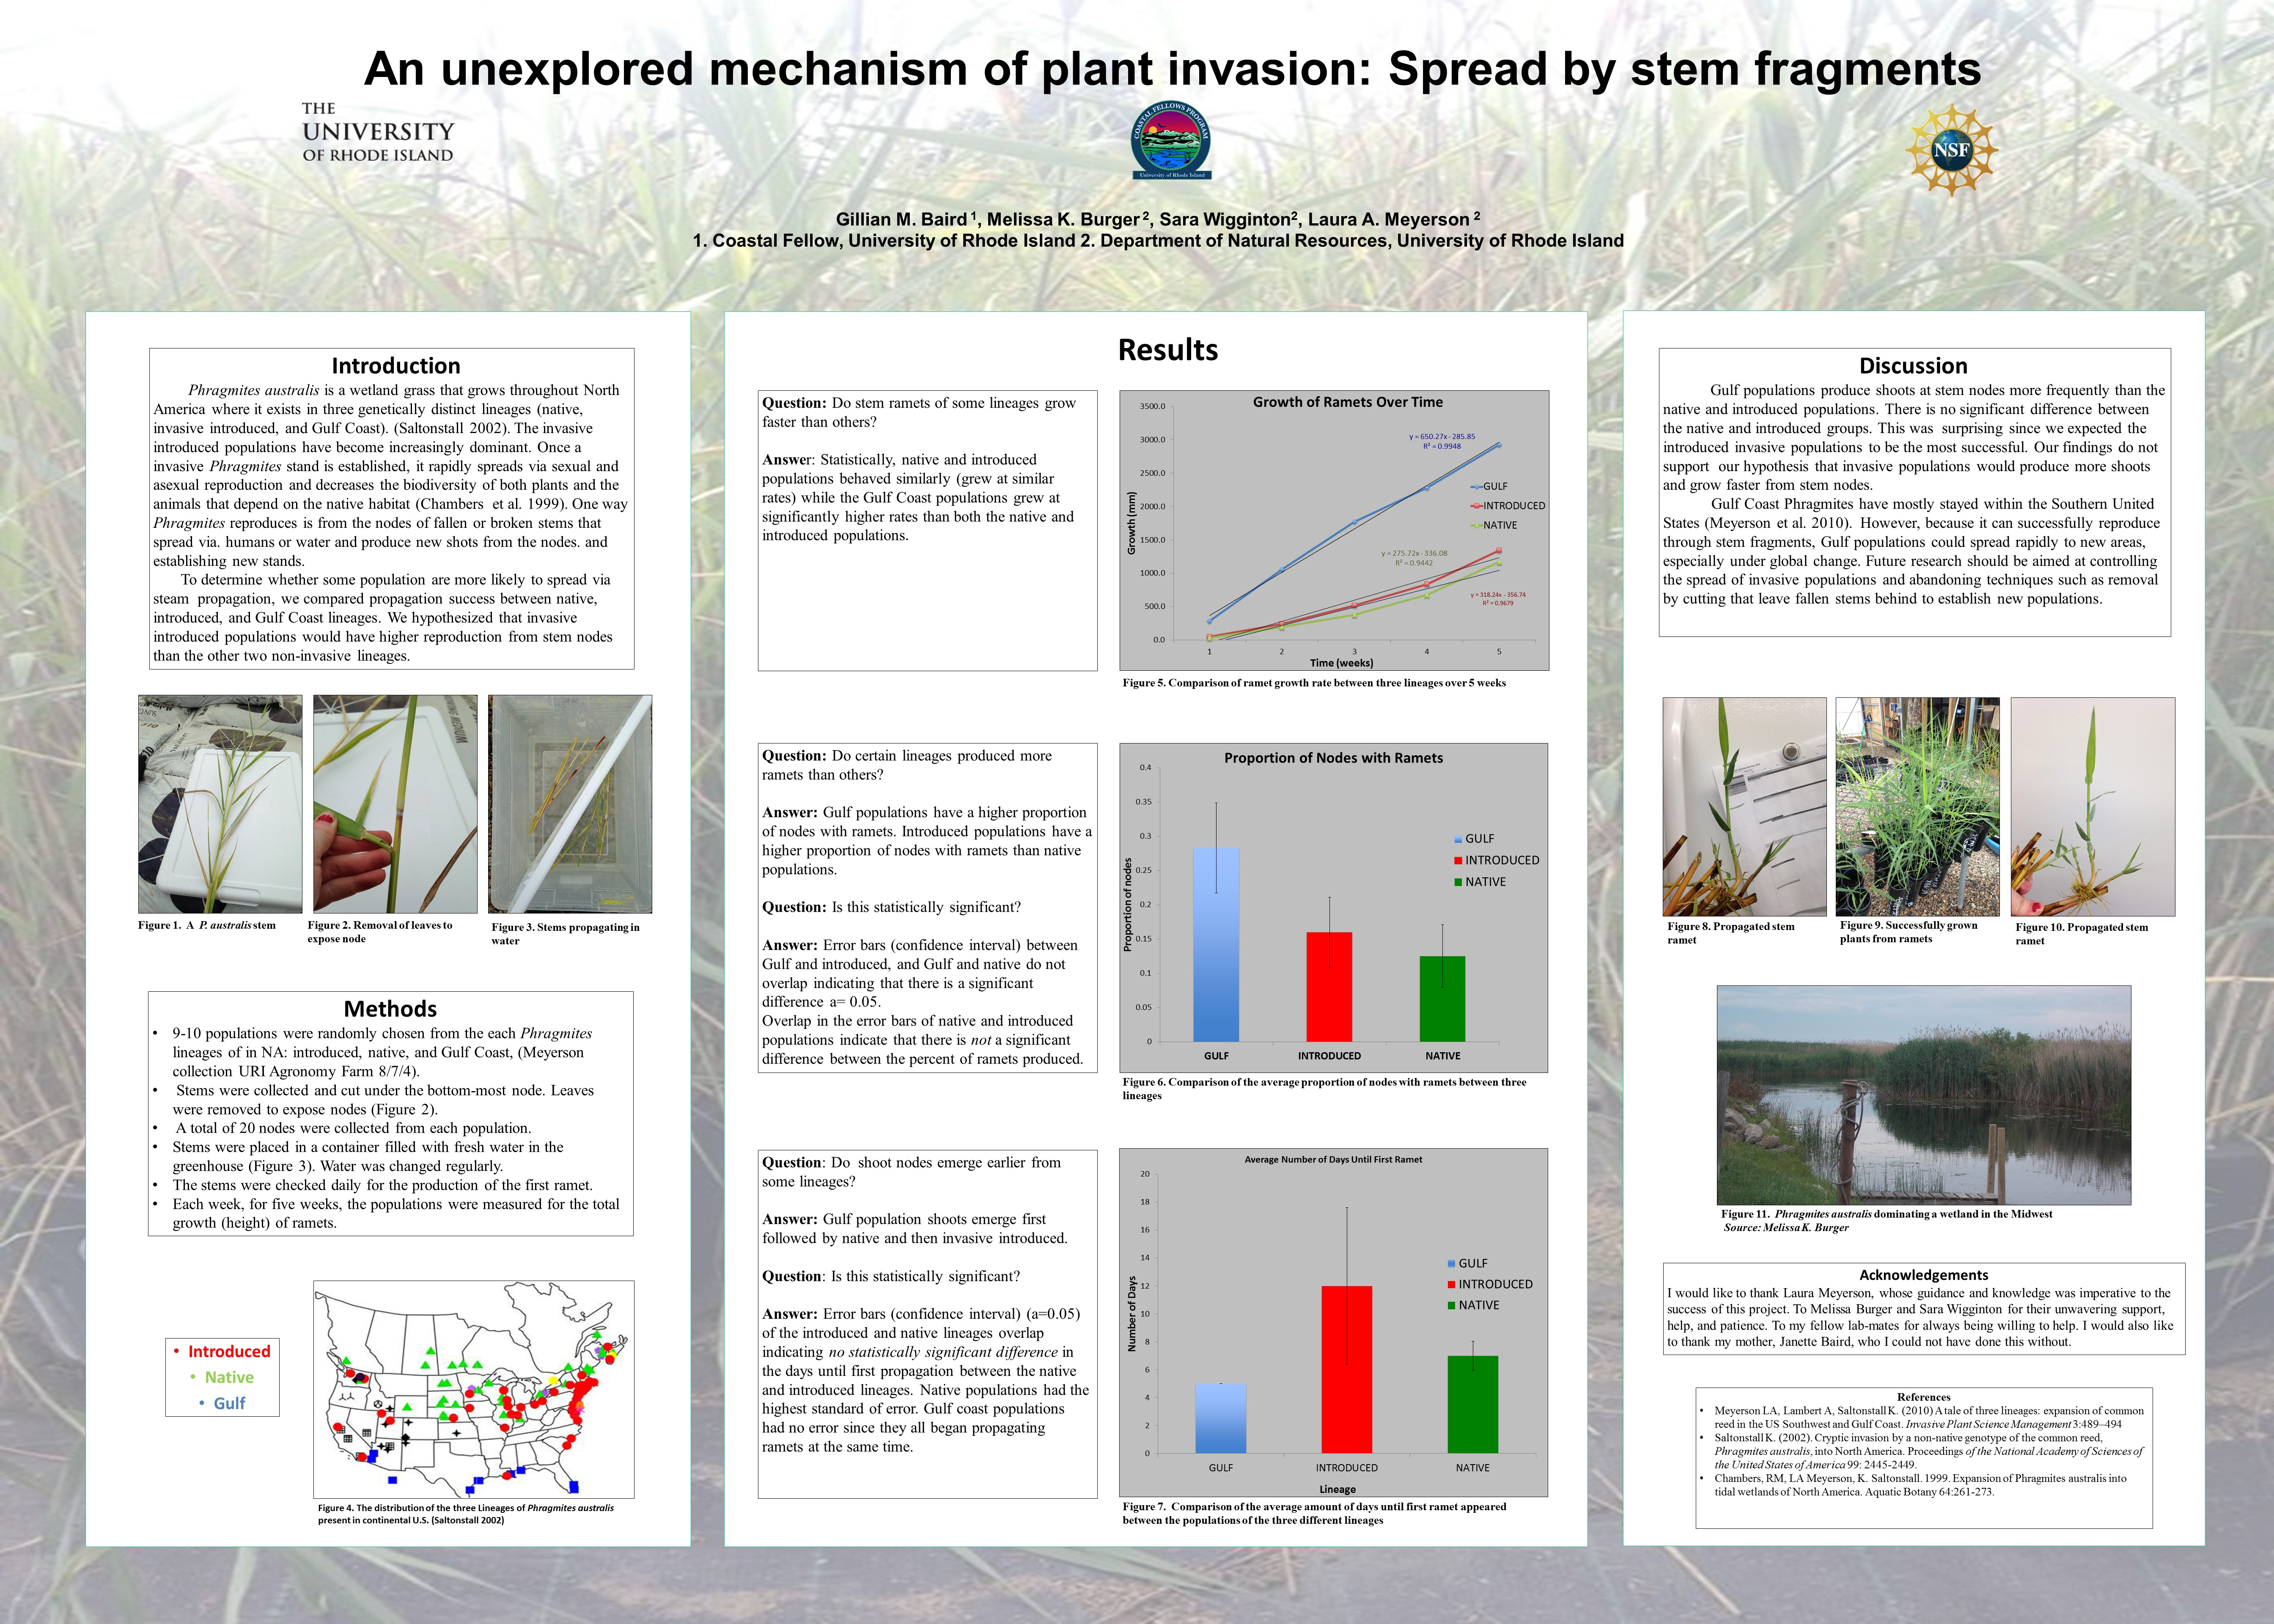 An Unexplored mechanism of plant invasion: Spread by stem fragments